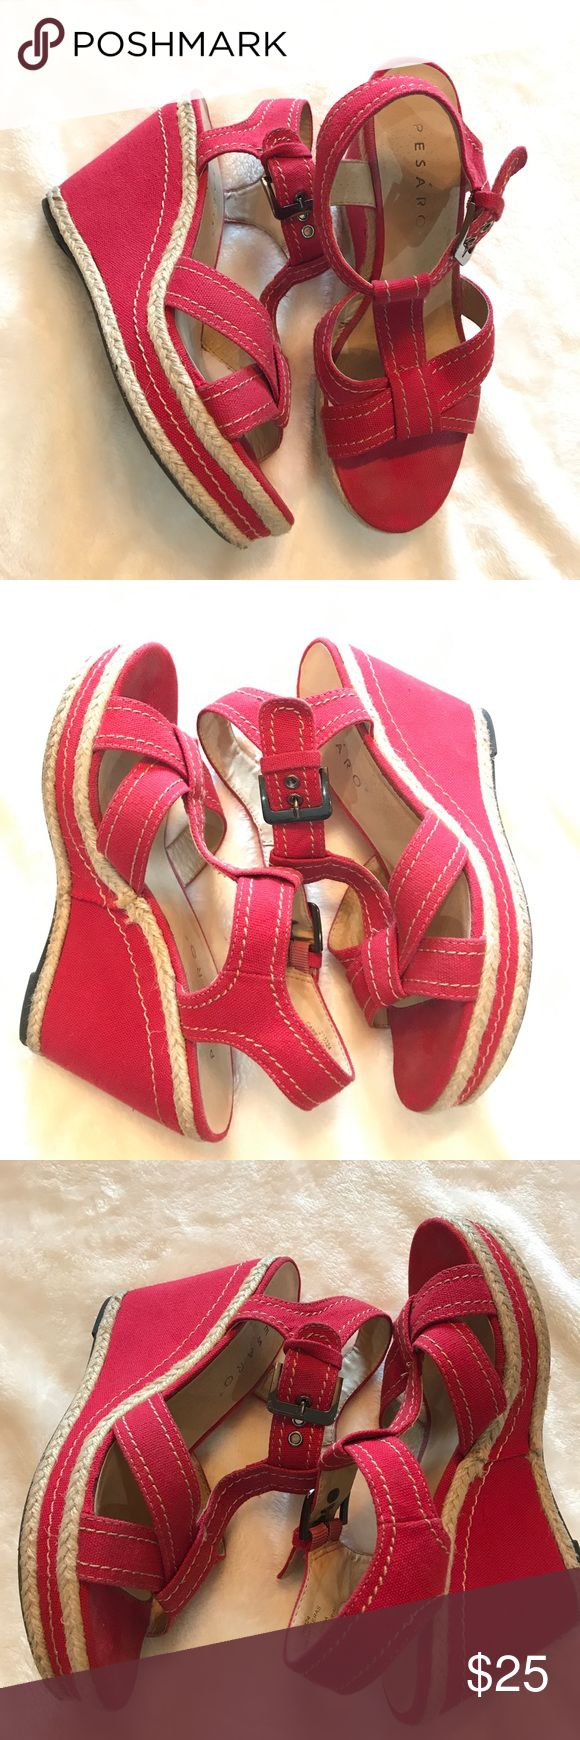 Hot pink wedges Great used conditions, very comfortable PESARO Shoes Wedges